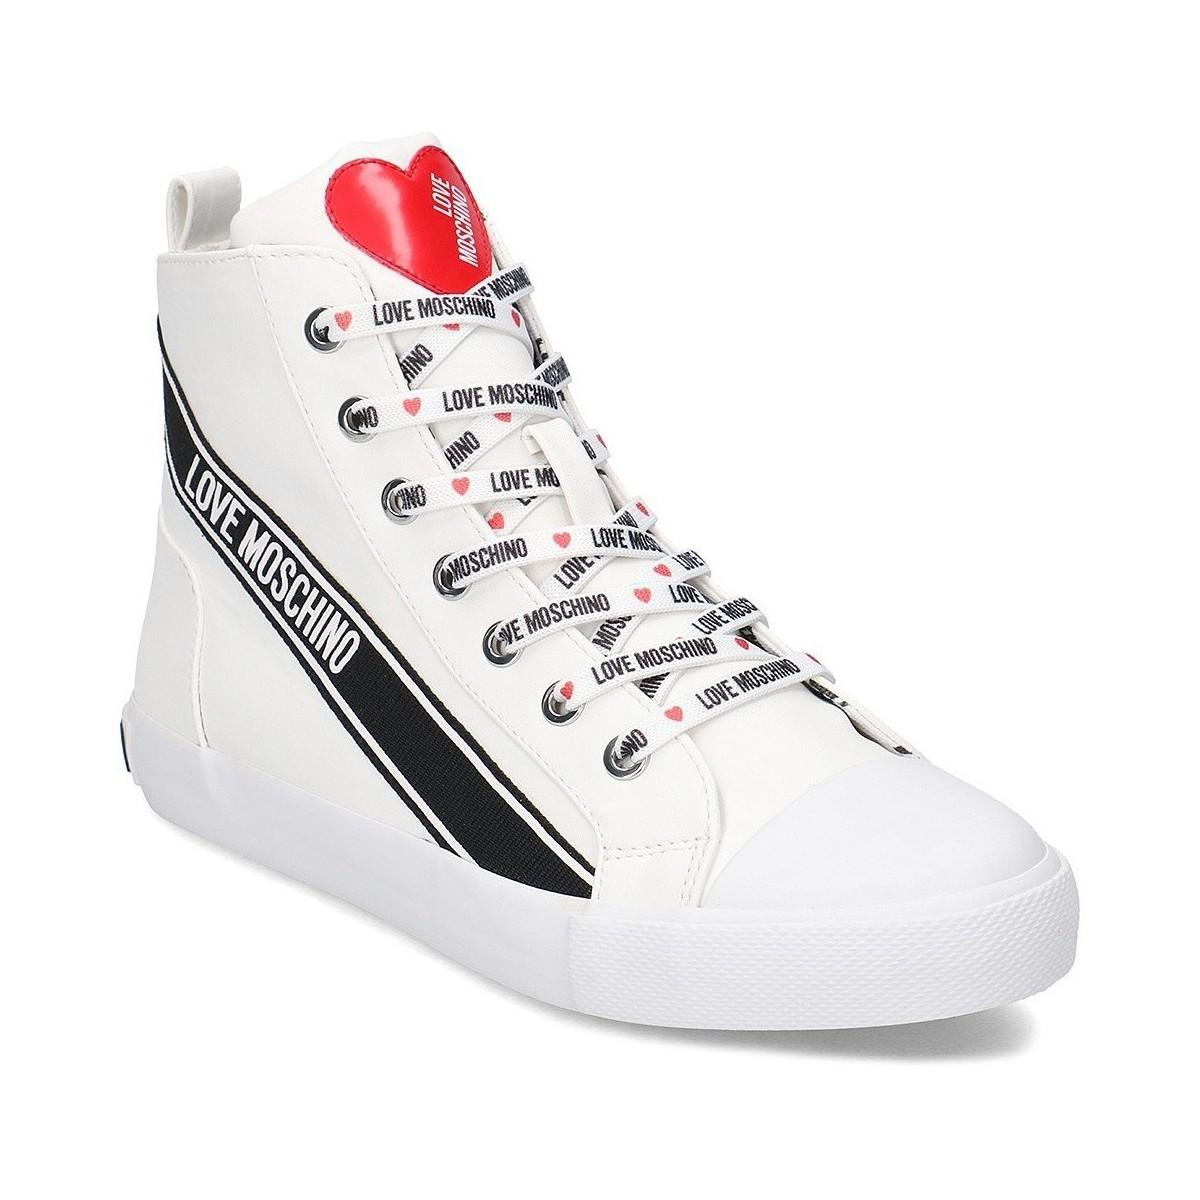 05c238dd821f Love Moschino - Summer Sneaker Women s Shoes (high-top Trainers) In White  -. View fullscreen